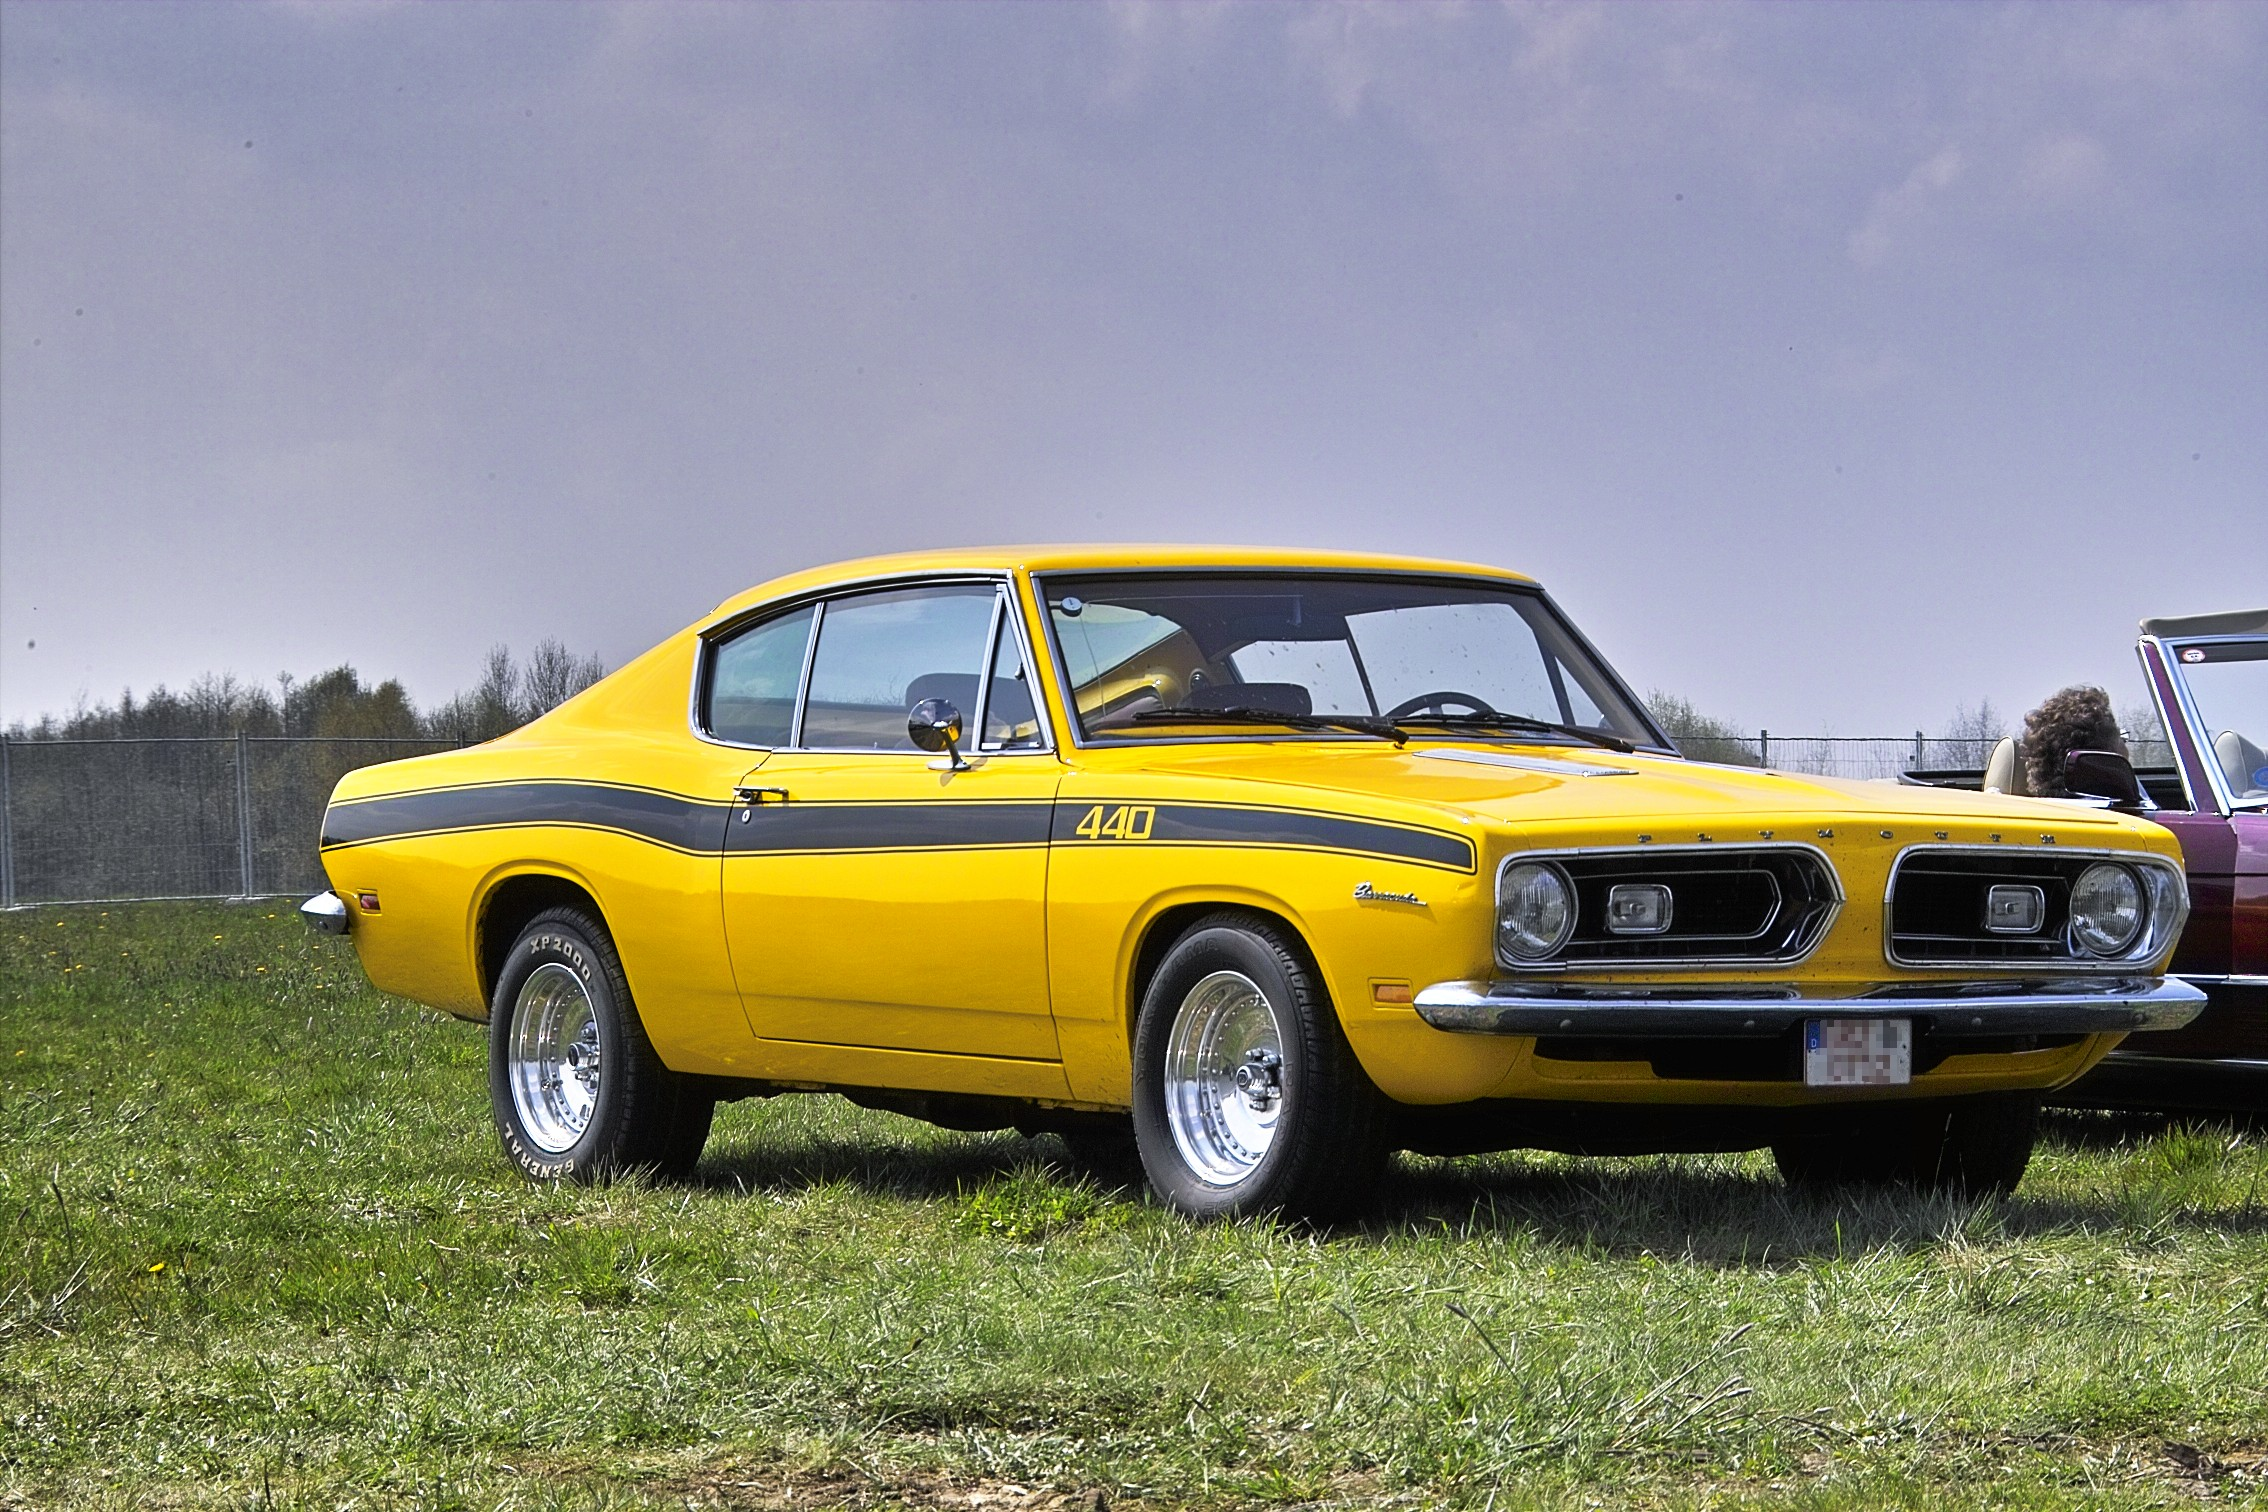 Description Plymouth barracuda 440 1969 front.jpg